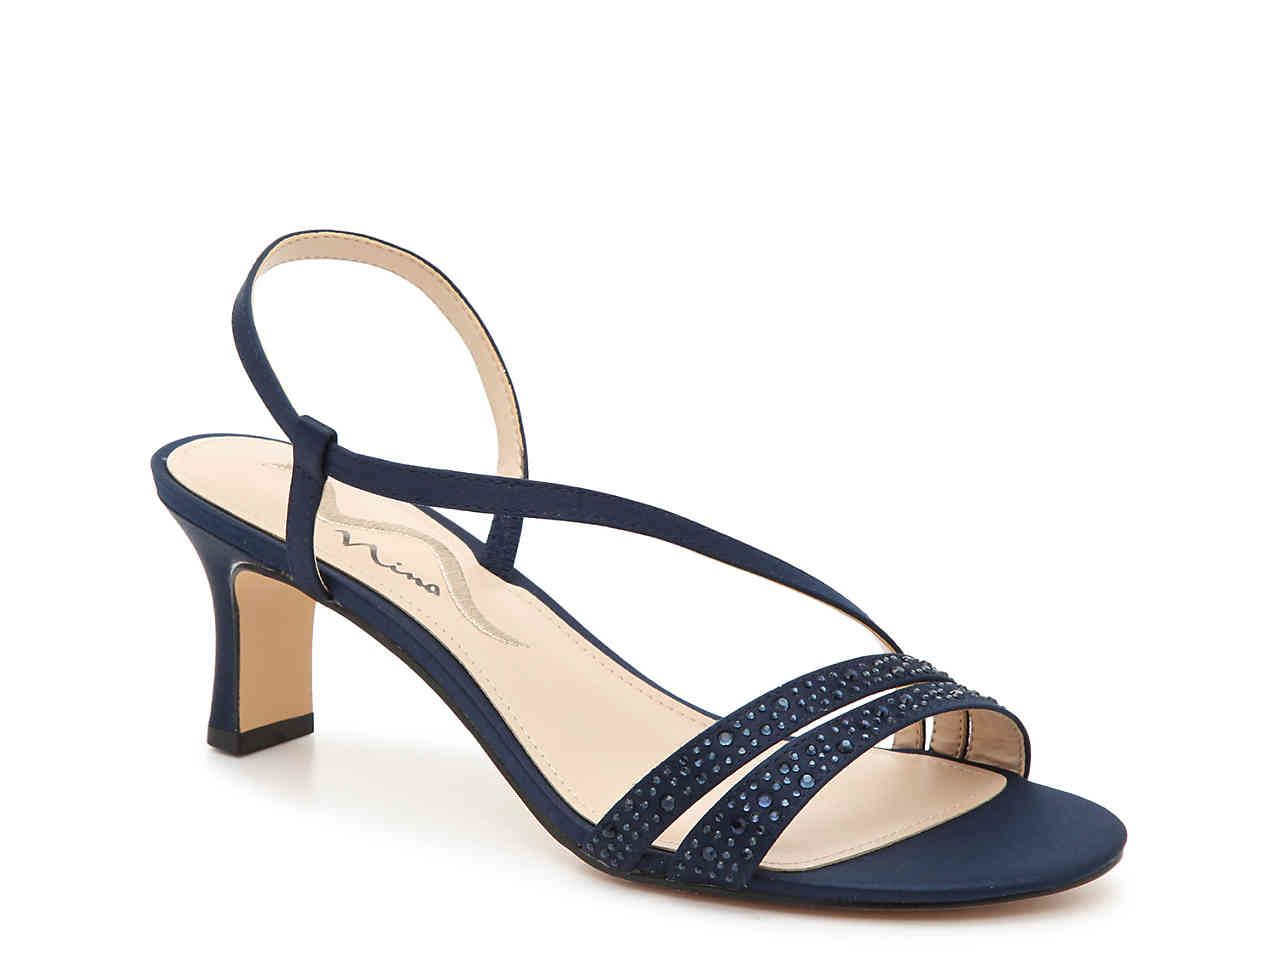 e238e24c0f93 DSW  Nina Naydeen Sandle. Wedding shoes  something blue